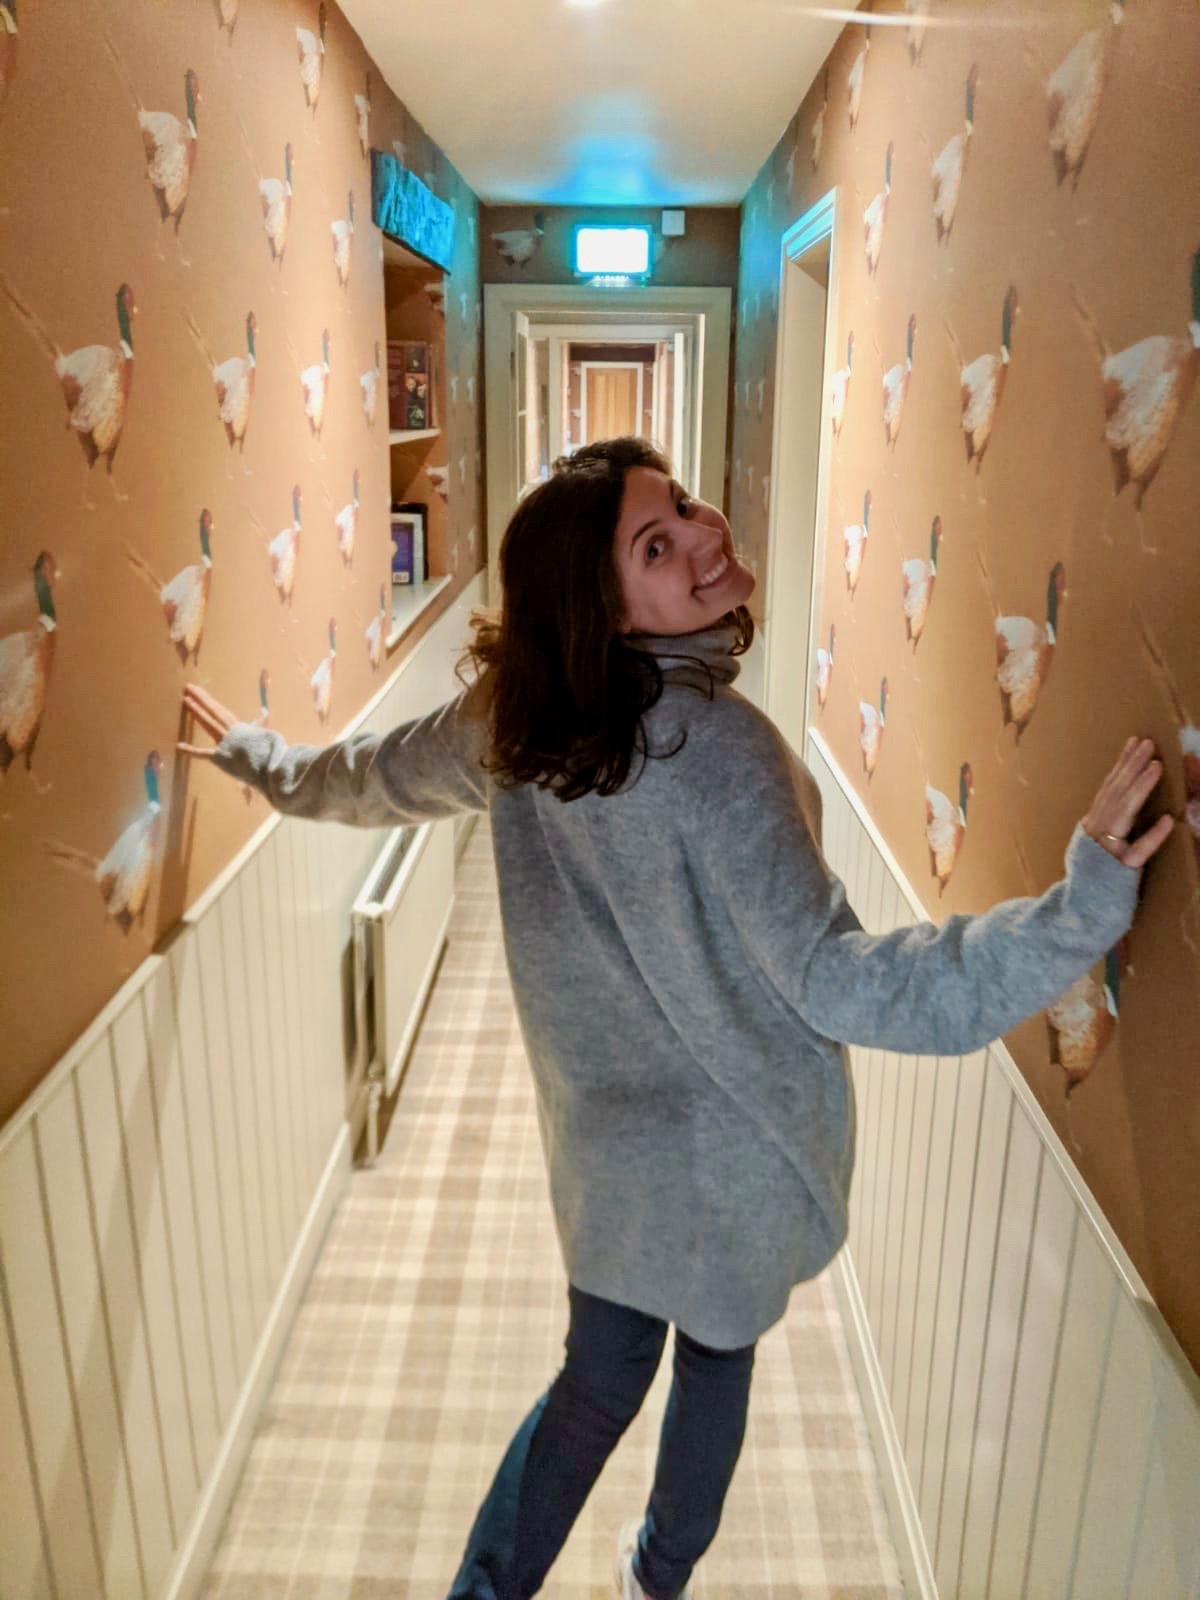 The Pheasant Hotel Harome: Nell posing in the corridor next to some pheasant wallpaper